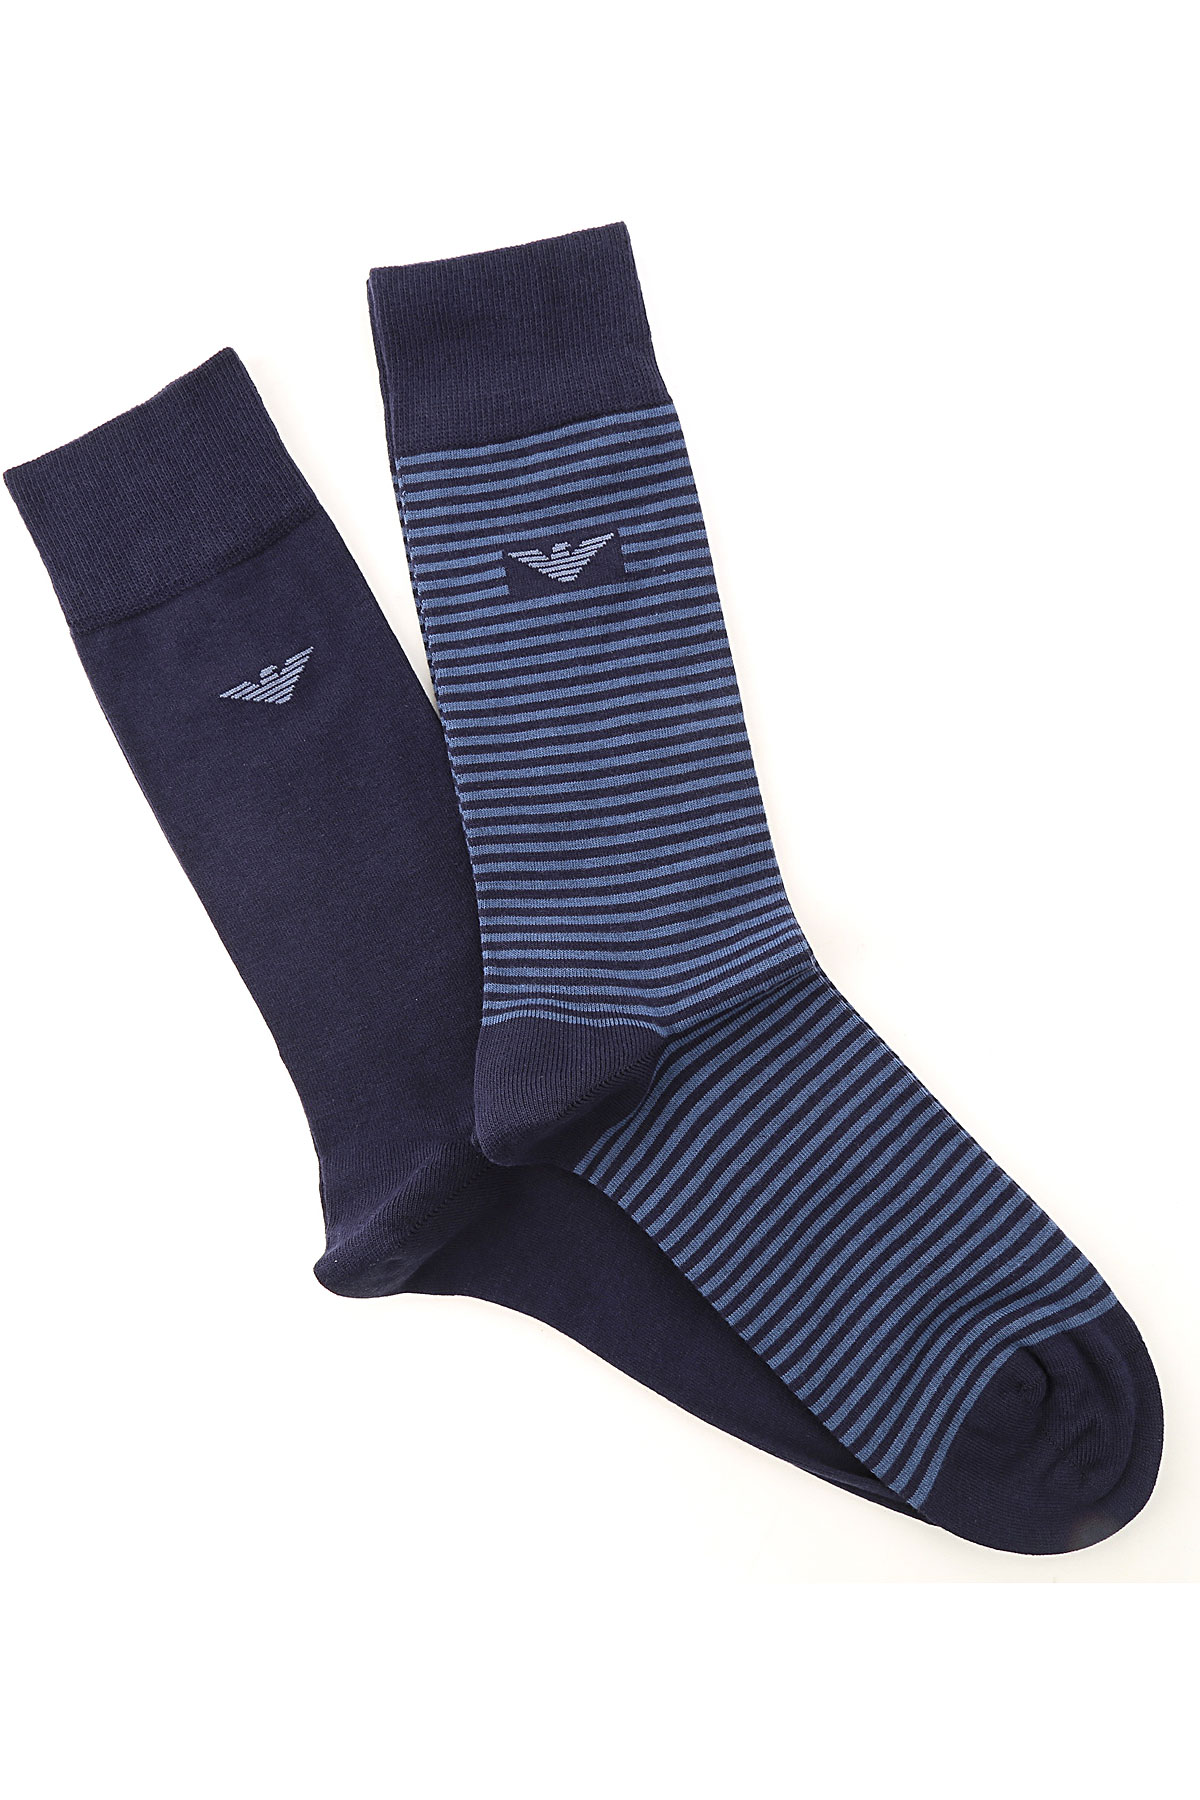 Emporio Armani Socks Socks for Men On Sale, 2 Pack, Midnight Blue, Organic Cotton, 2019